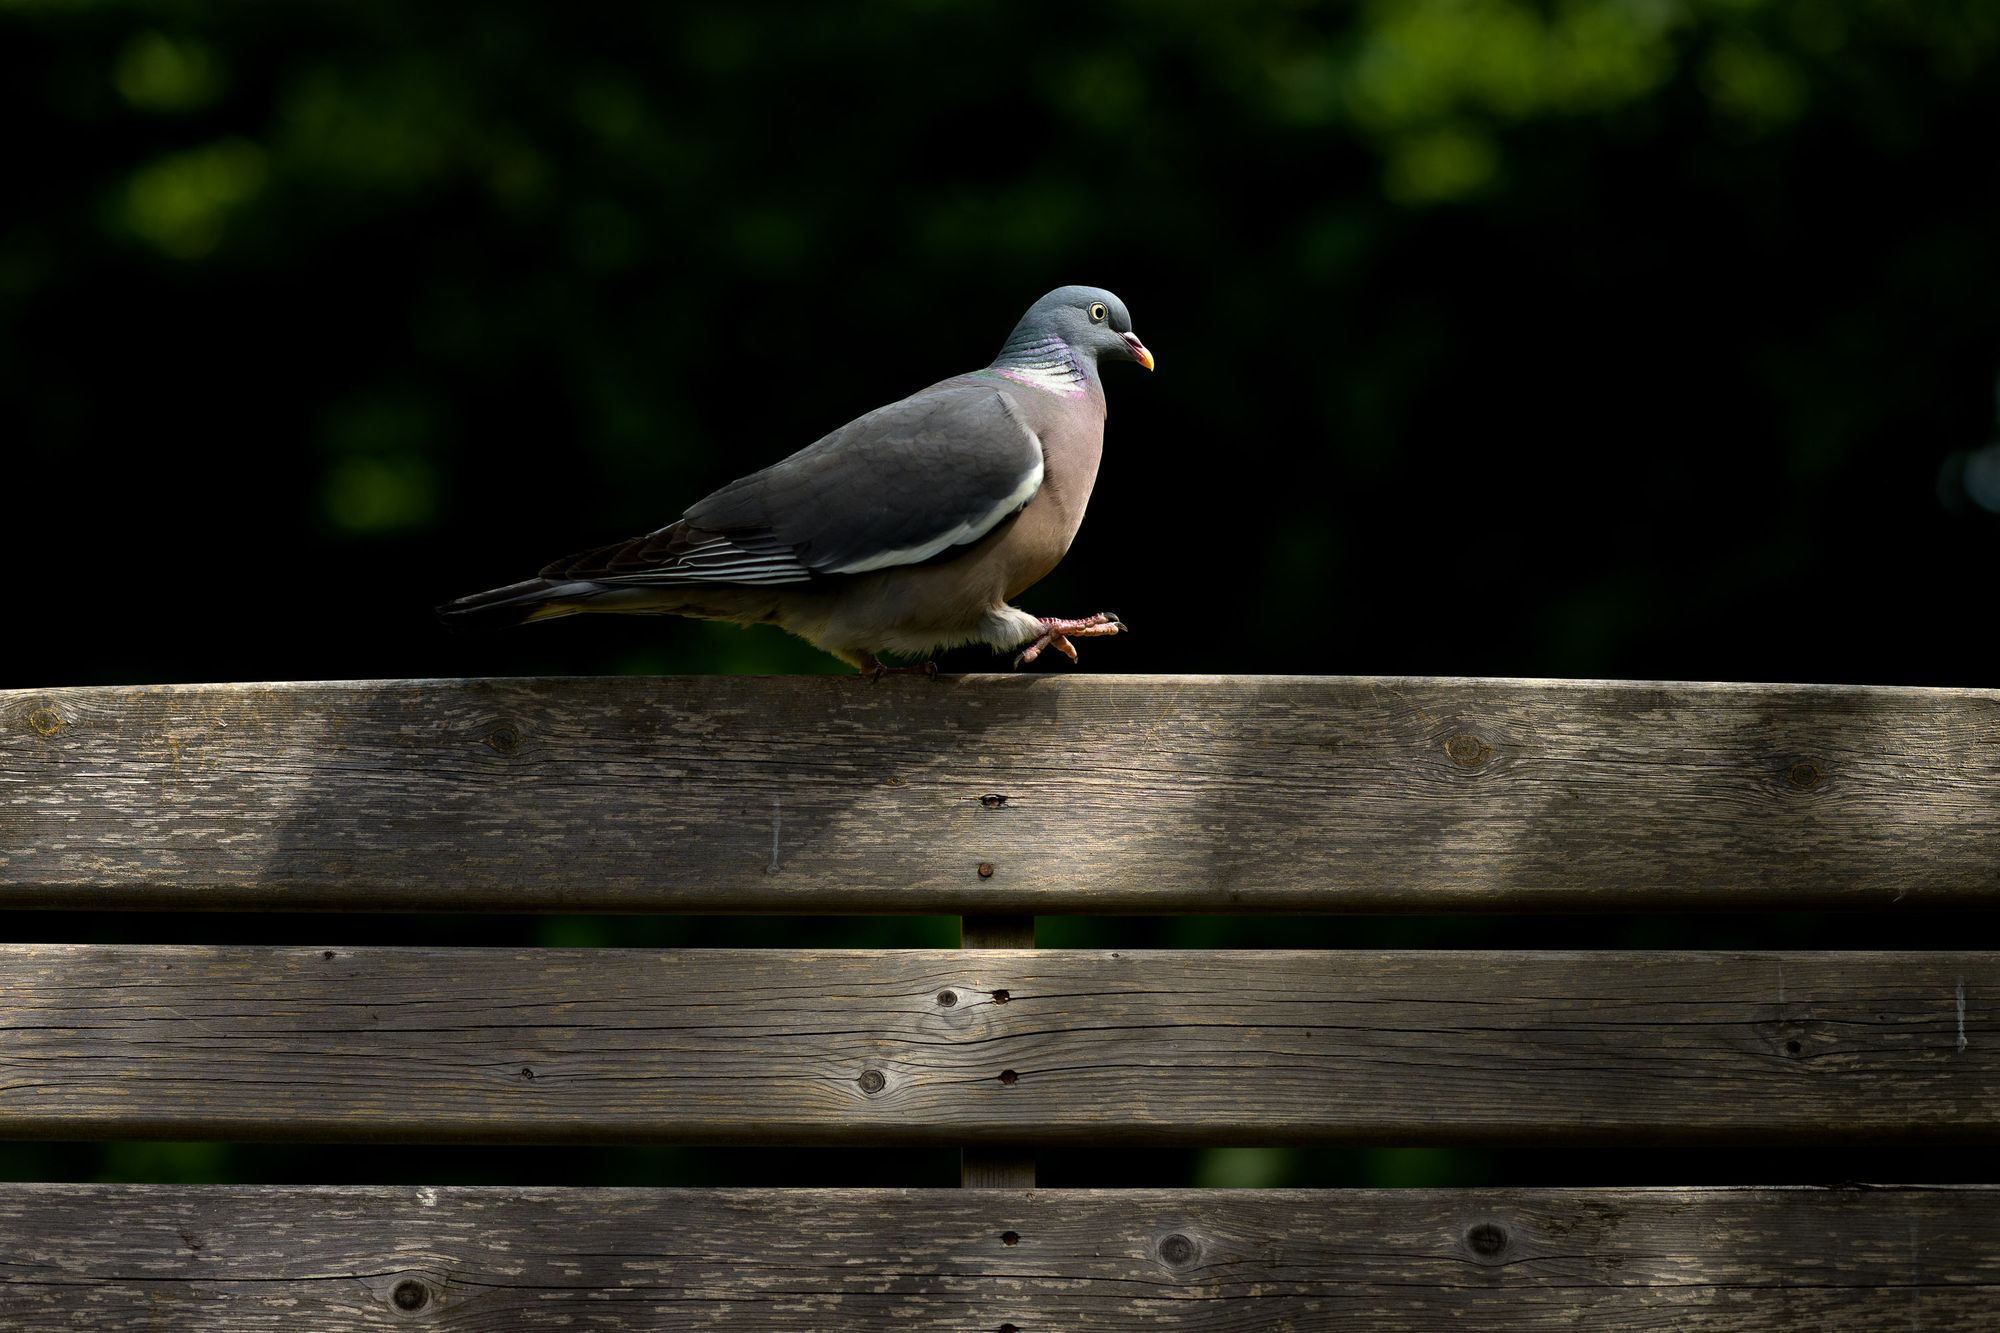 pigeon photography, dappled ligjht, Urban wildlife photography with Richard Peters